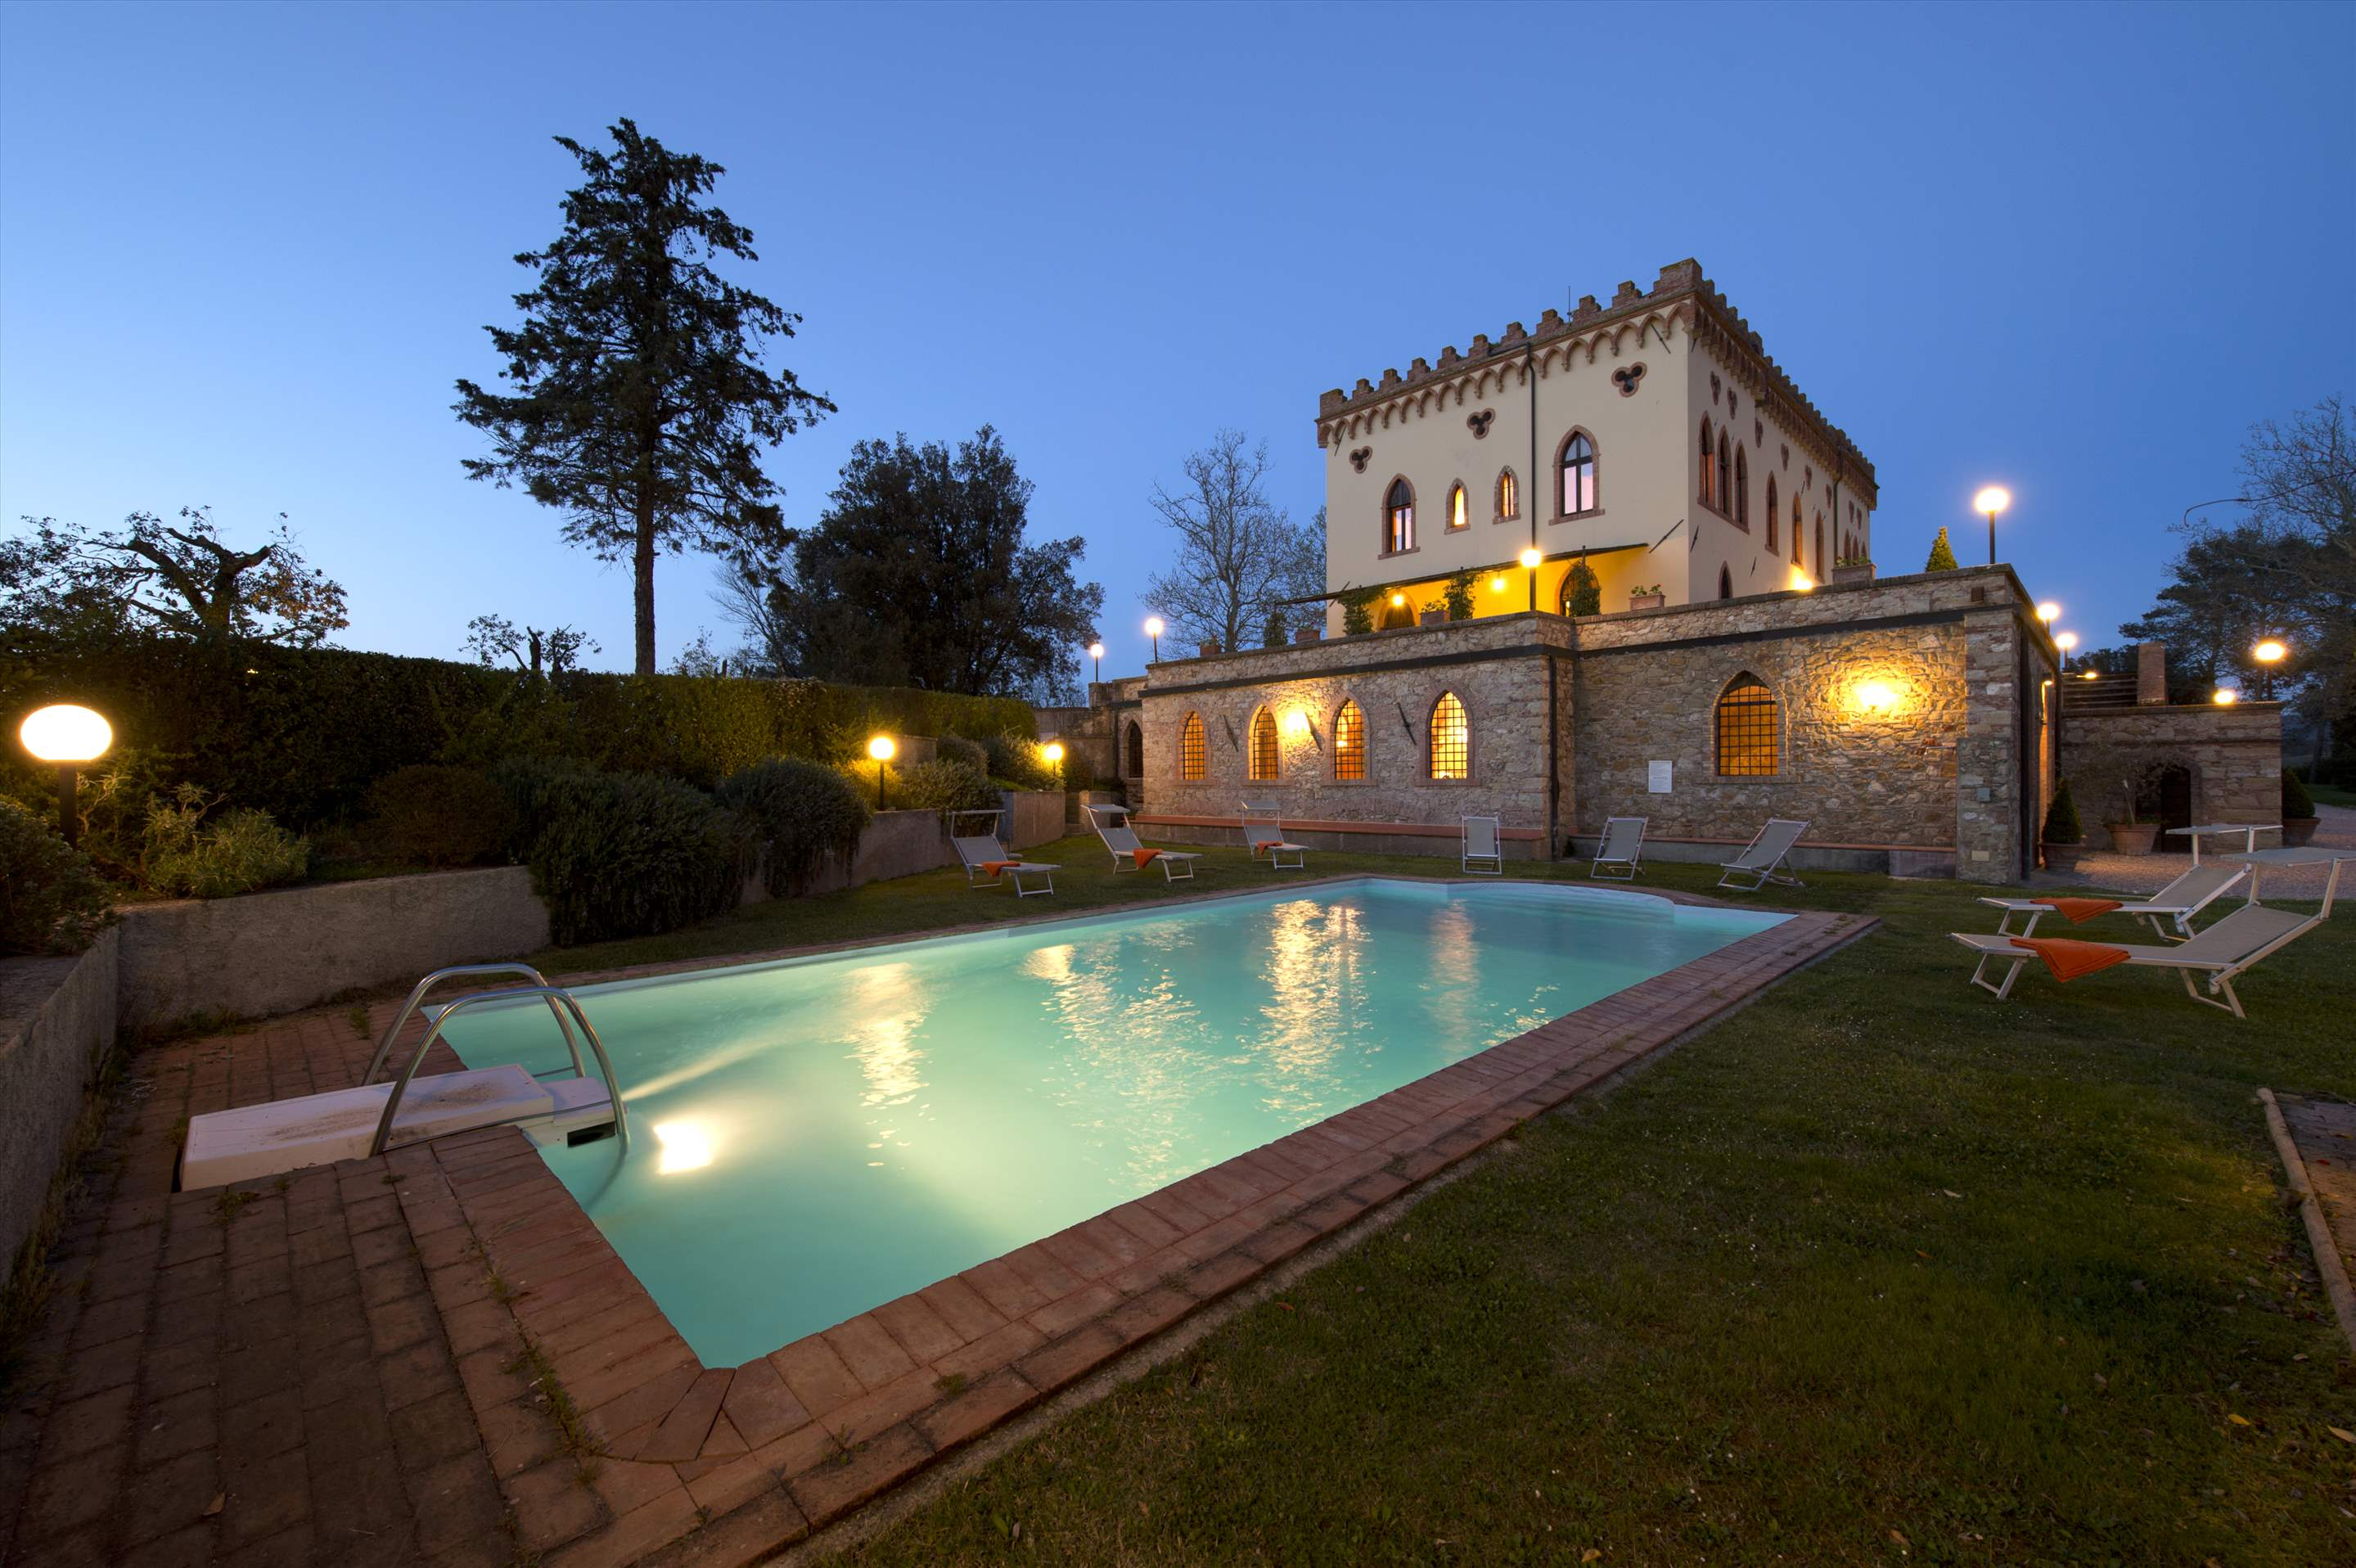 Villa Di Archi & Dependance, 9 bedroom villa in Tuscany Coast, Tuscany Photo #32